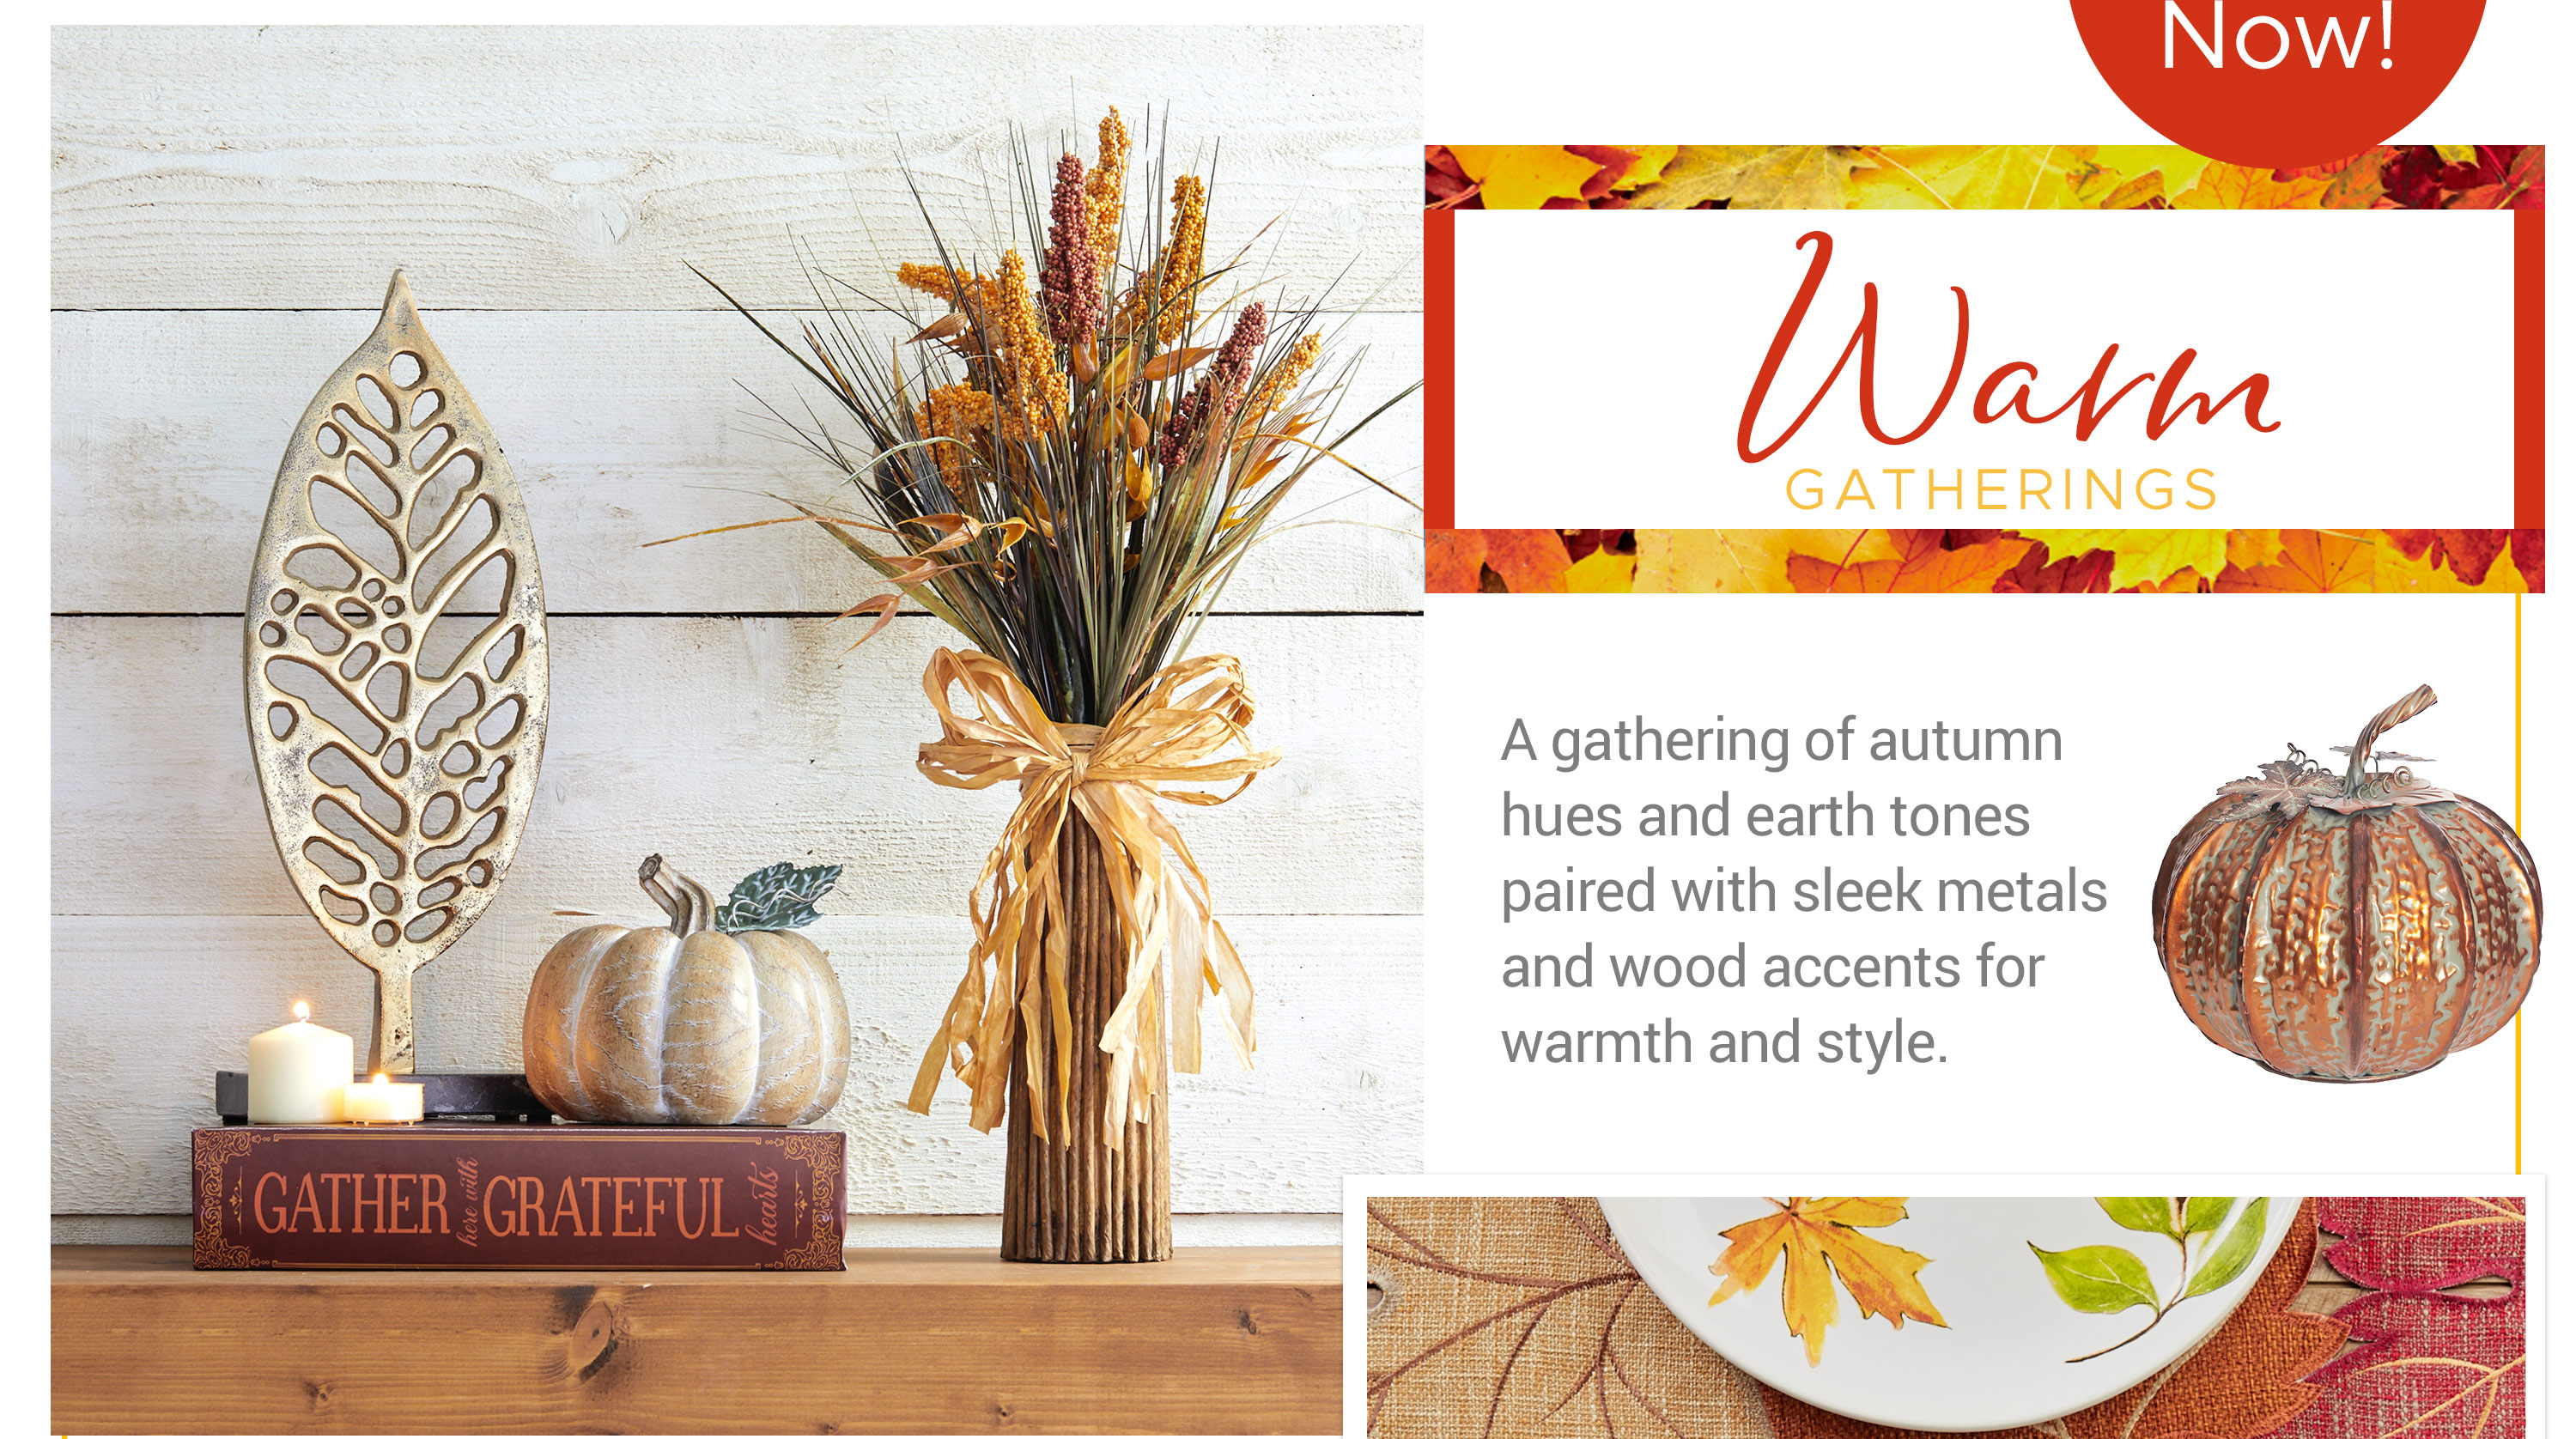 Warm Gatherings - A gathering of autumn hues and earth tones paired with sleek metals and wood accents for warmth and style.